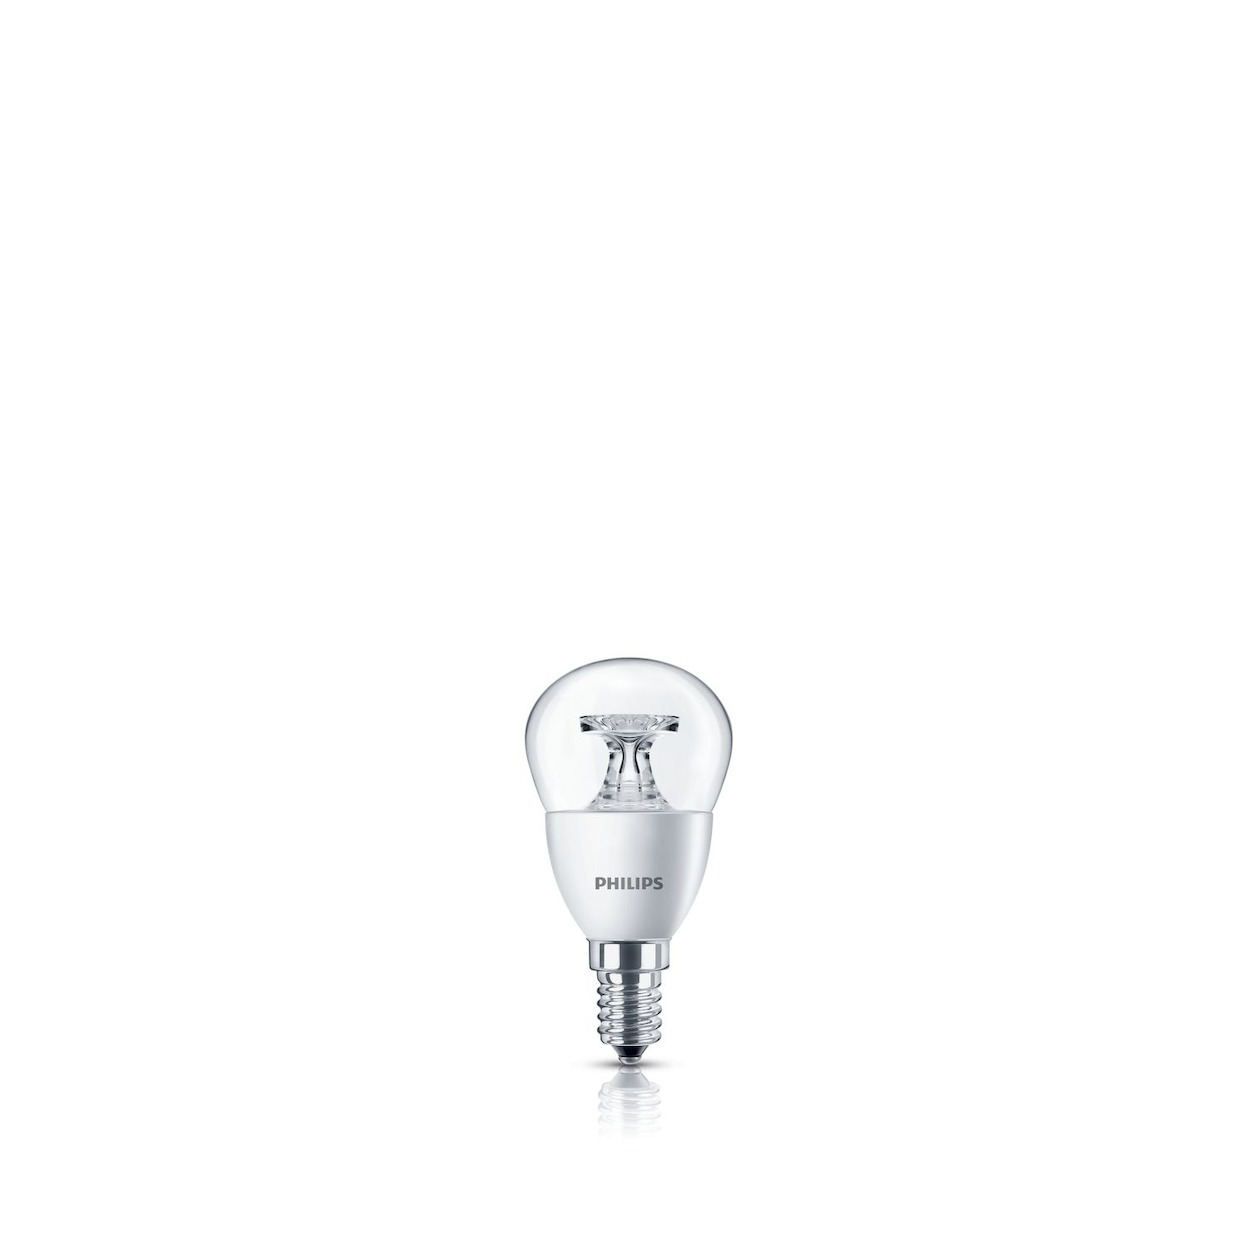 Philips LED lamp E14 4W 250Lm kogel helder